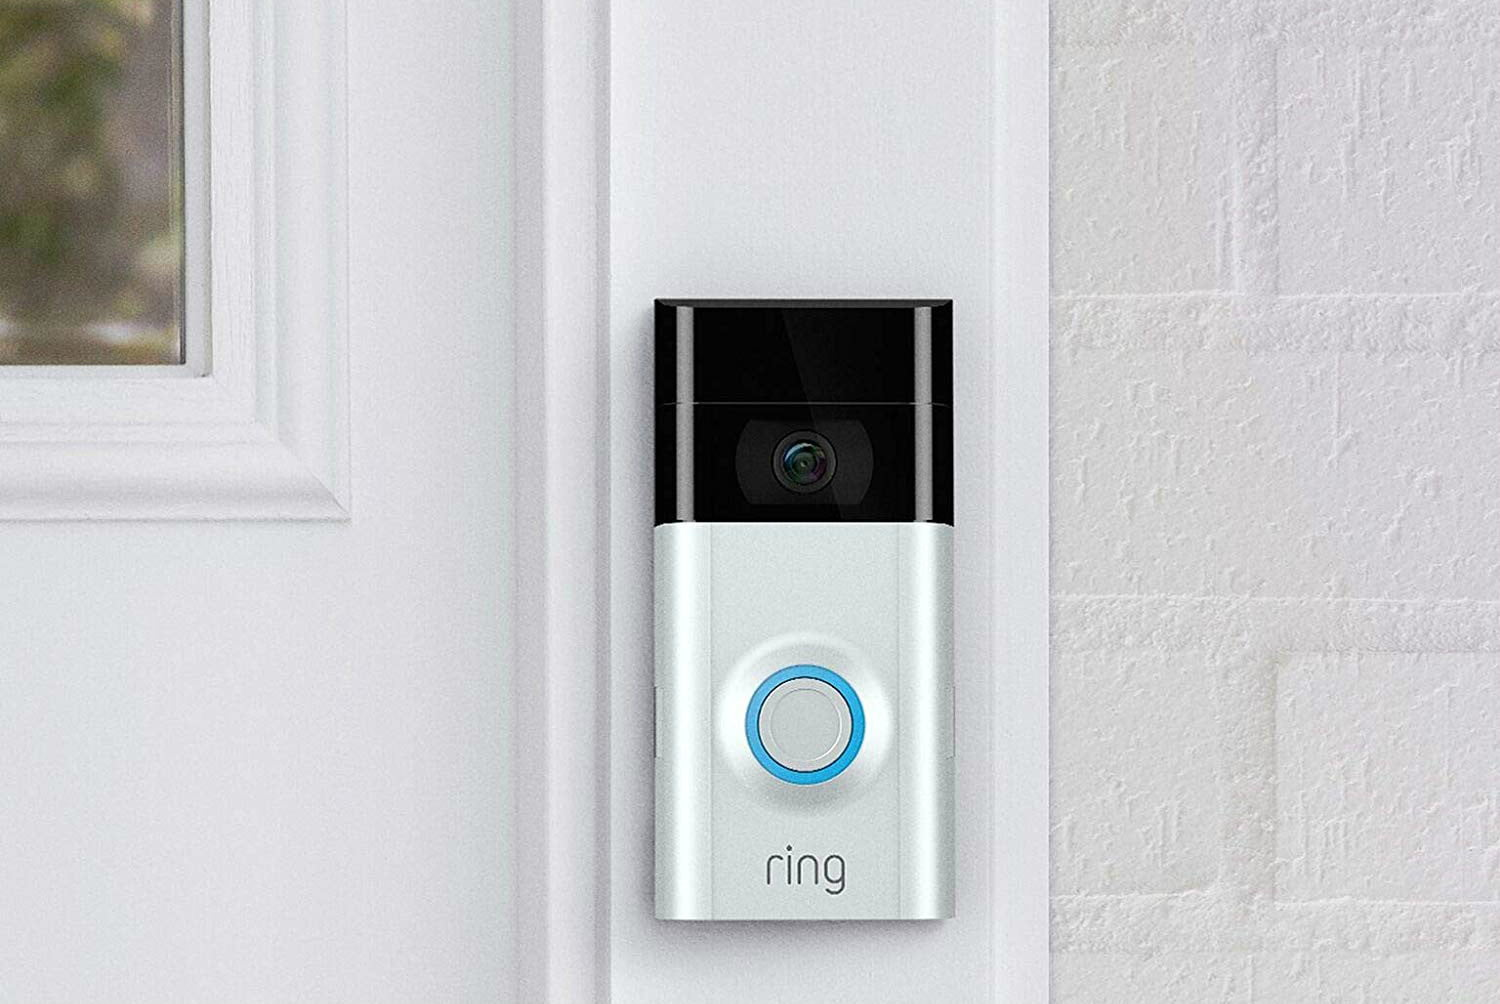 Amazon drops the price for the Ring Video Doorbell 2 and throws in an Echo Dot